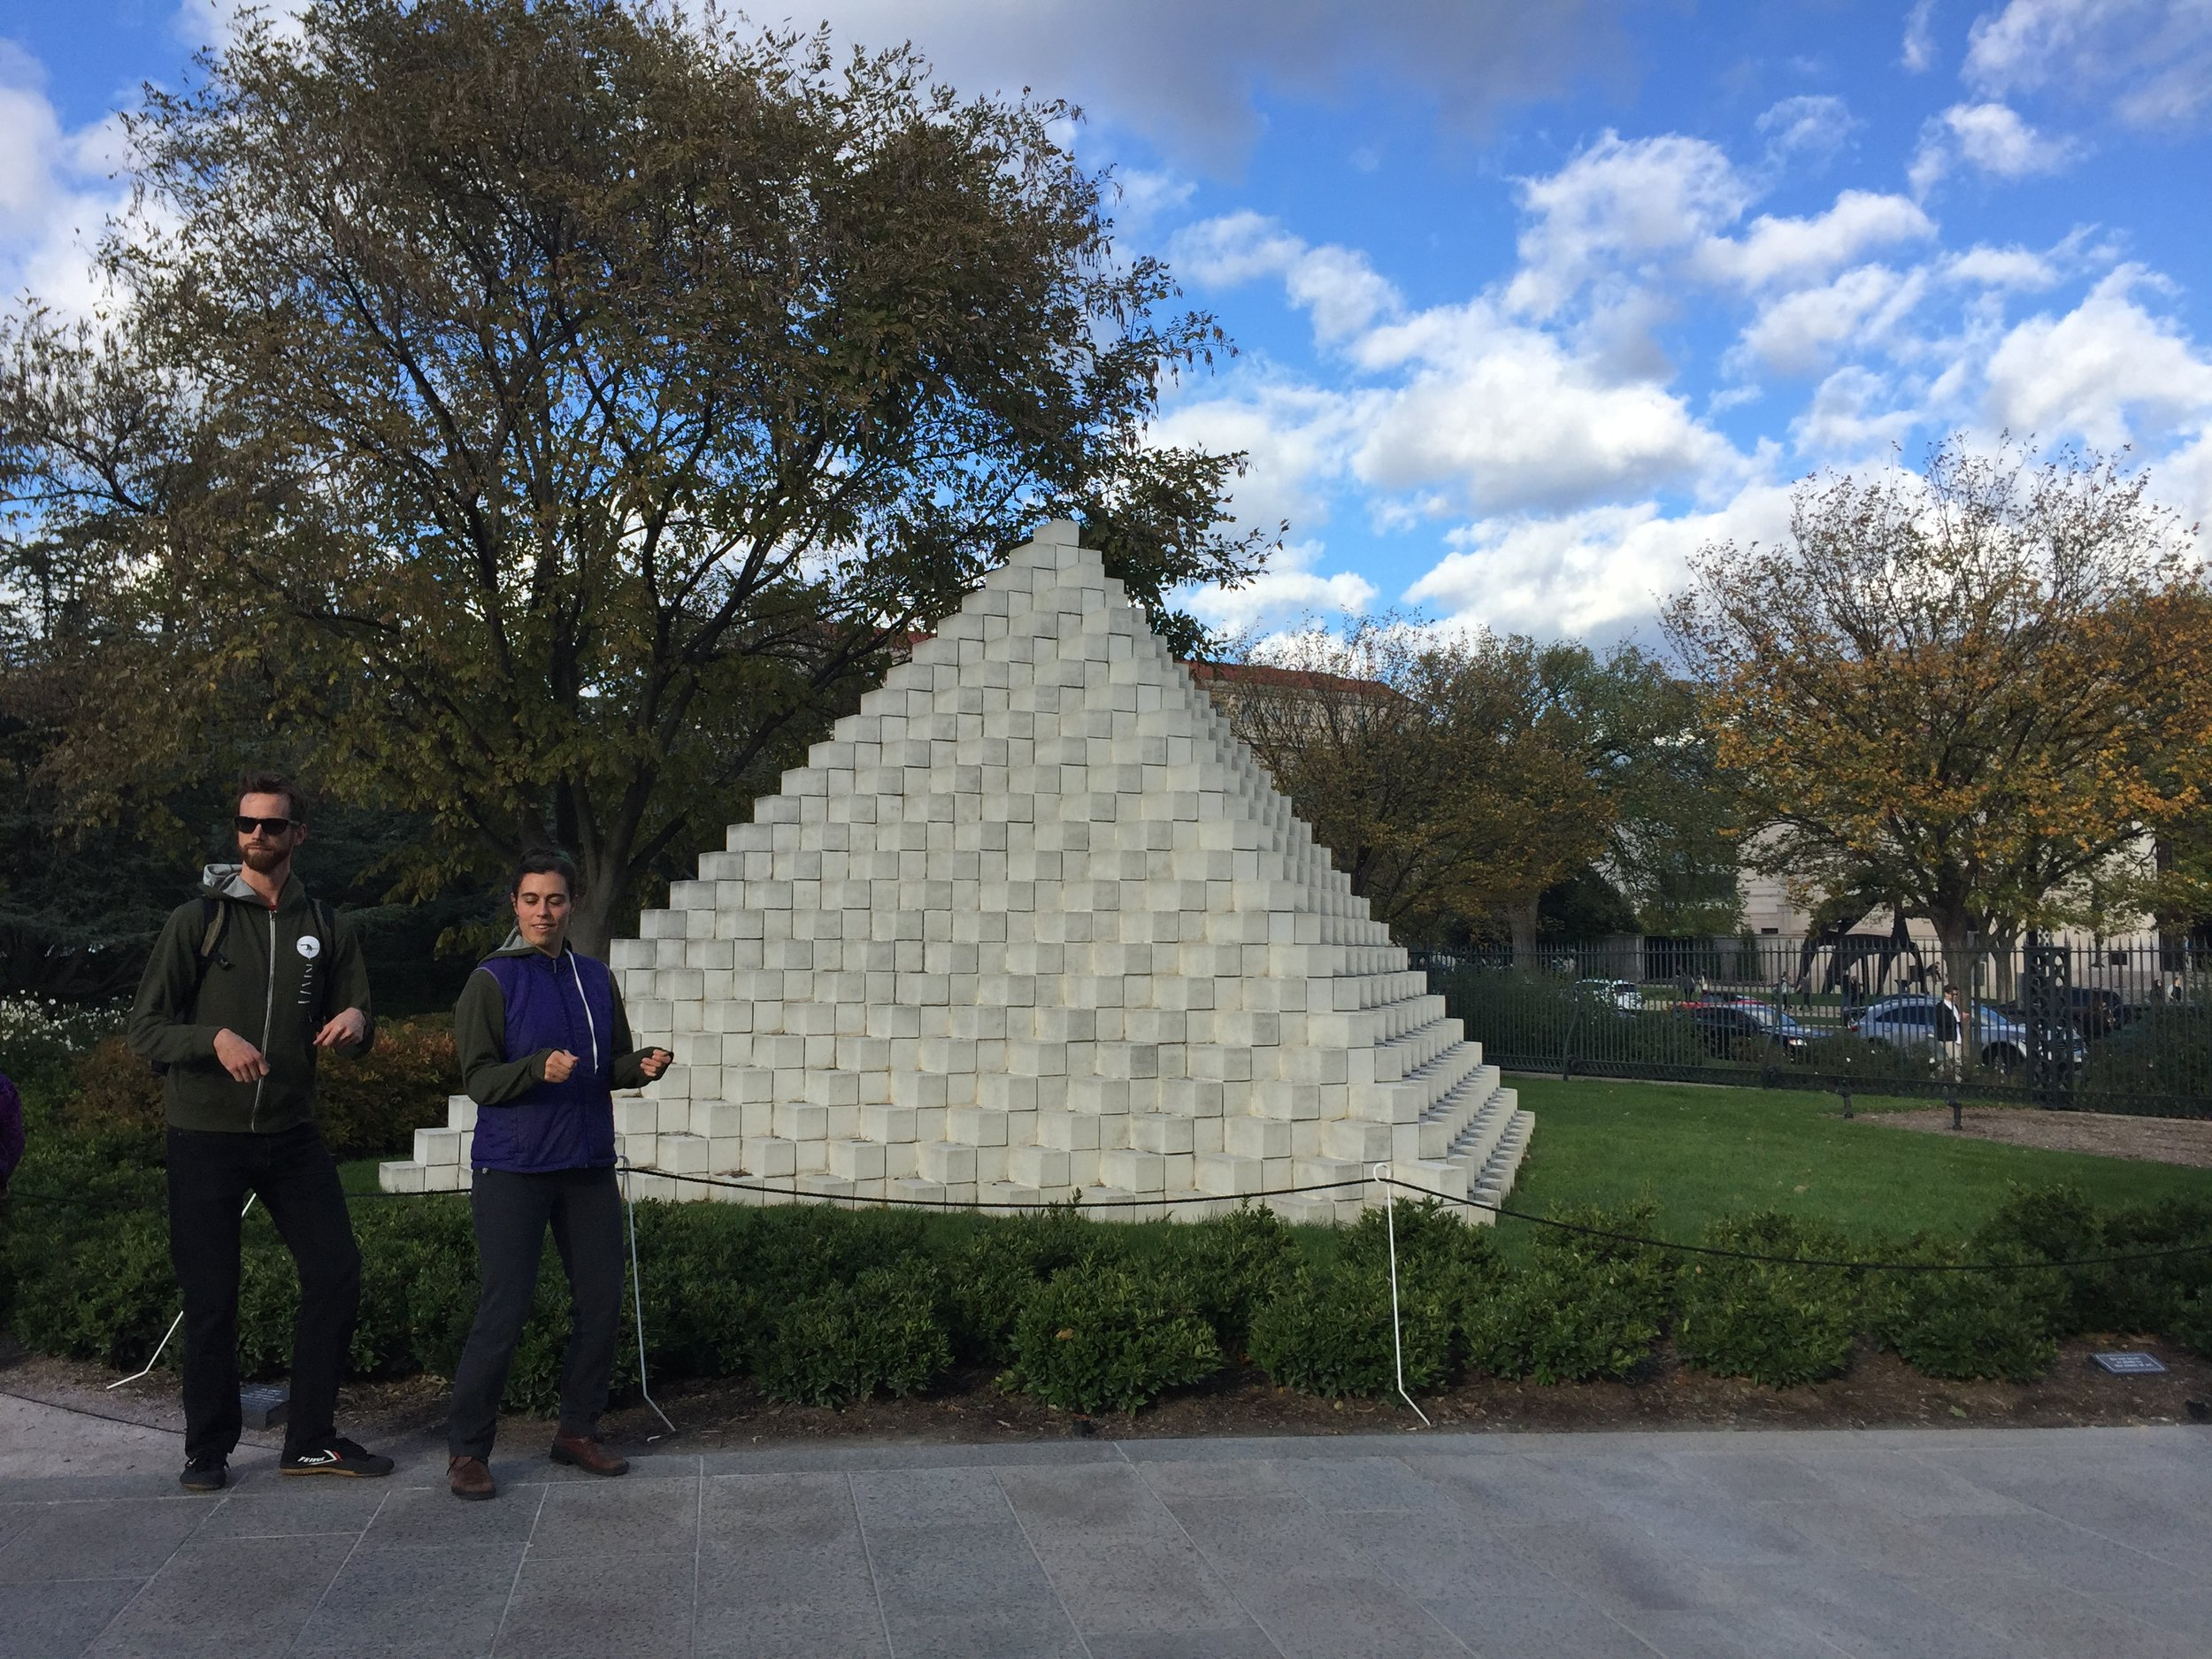 Every year on this date, Conundrum visits a pyramid.